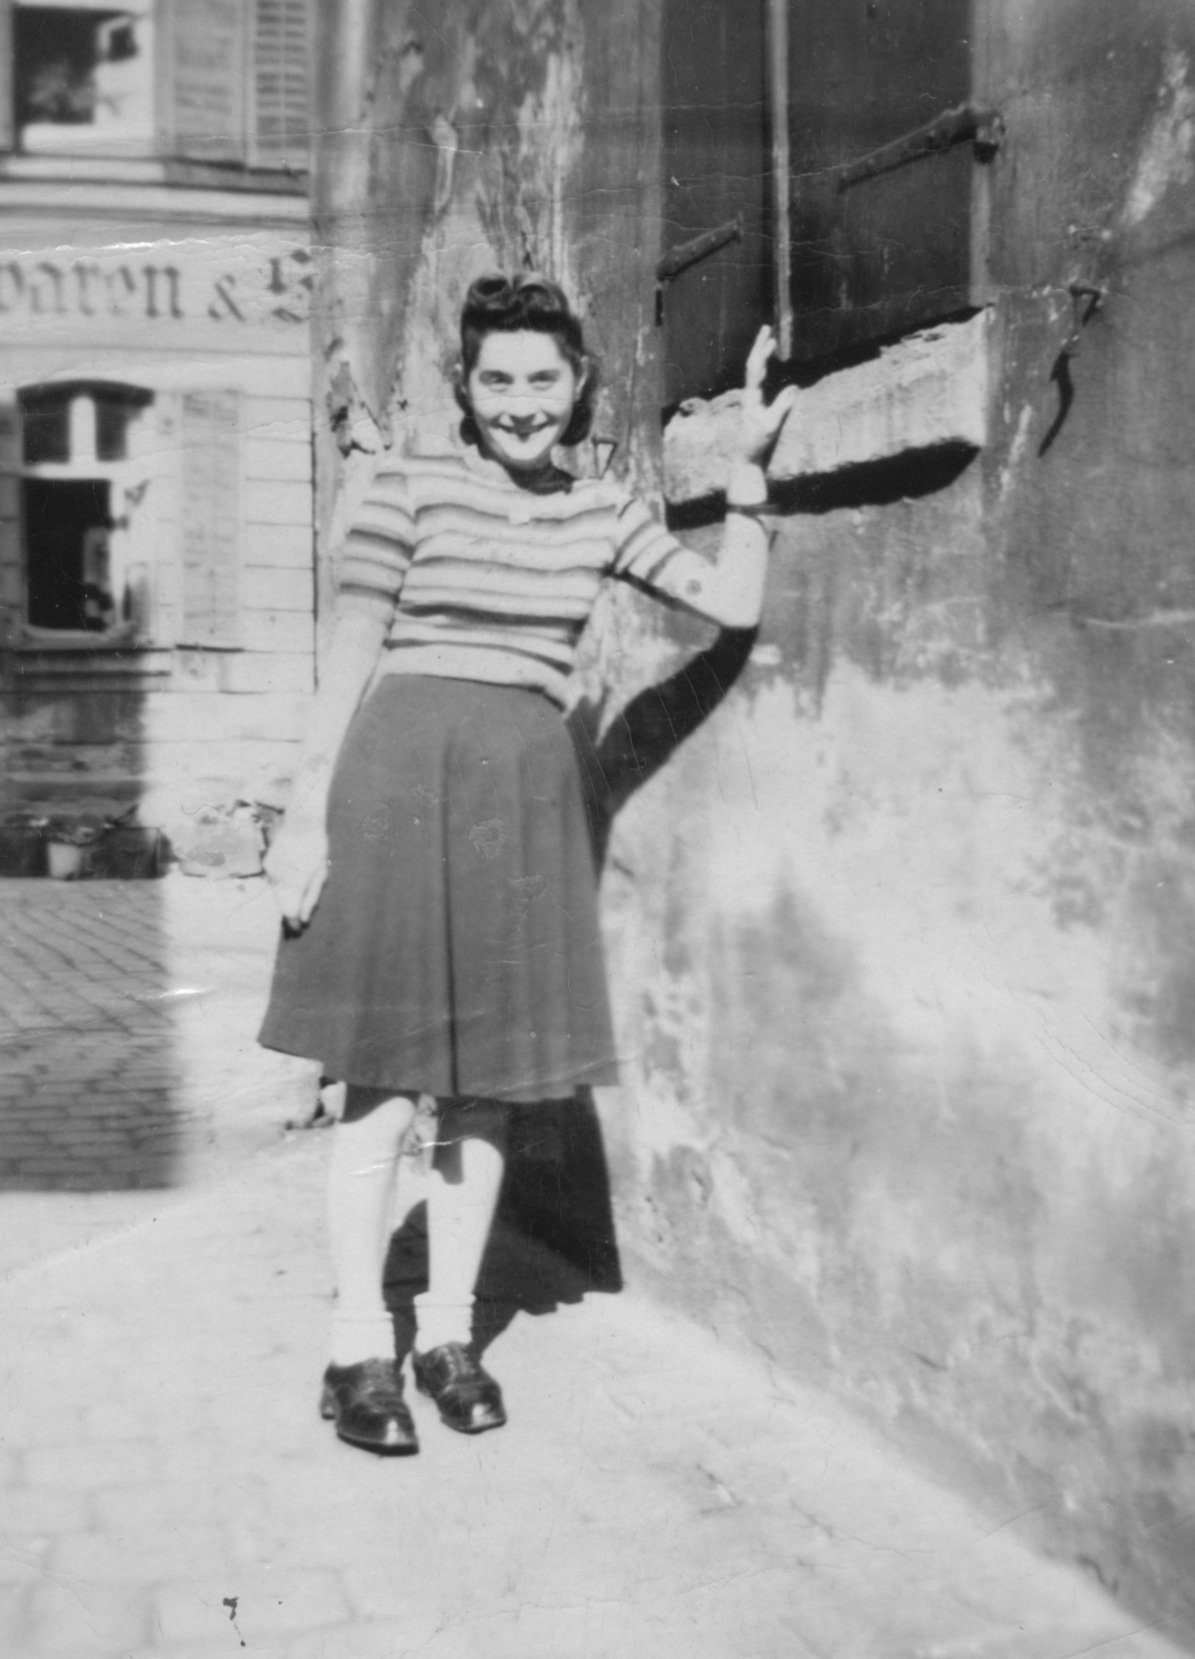 A young Jewish woman with dark hair stands next to an old building and leans against the windowsill while wearing a striped shirt with a solid skirt that reaches her knees. Black & white. 1945